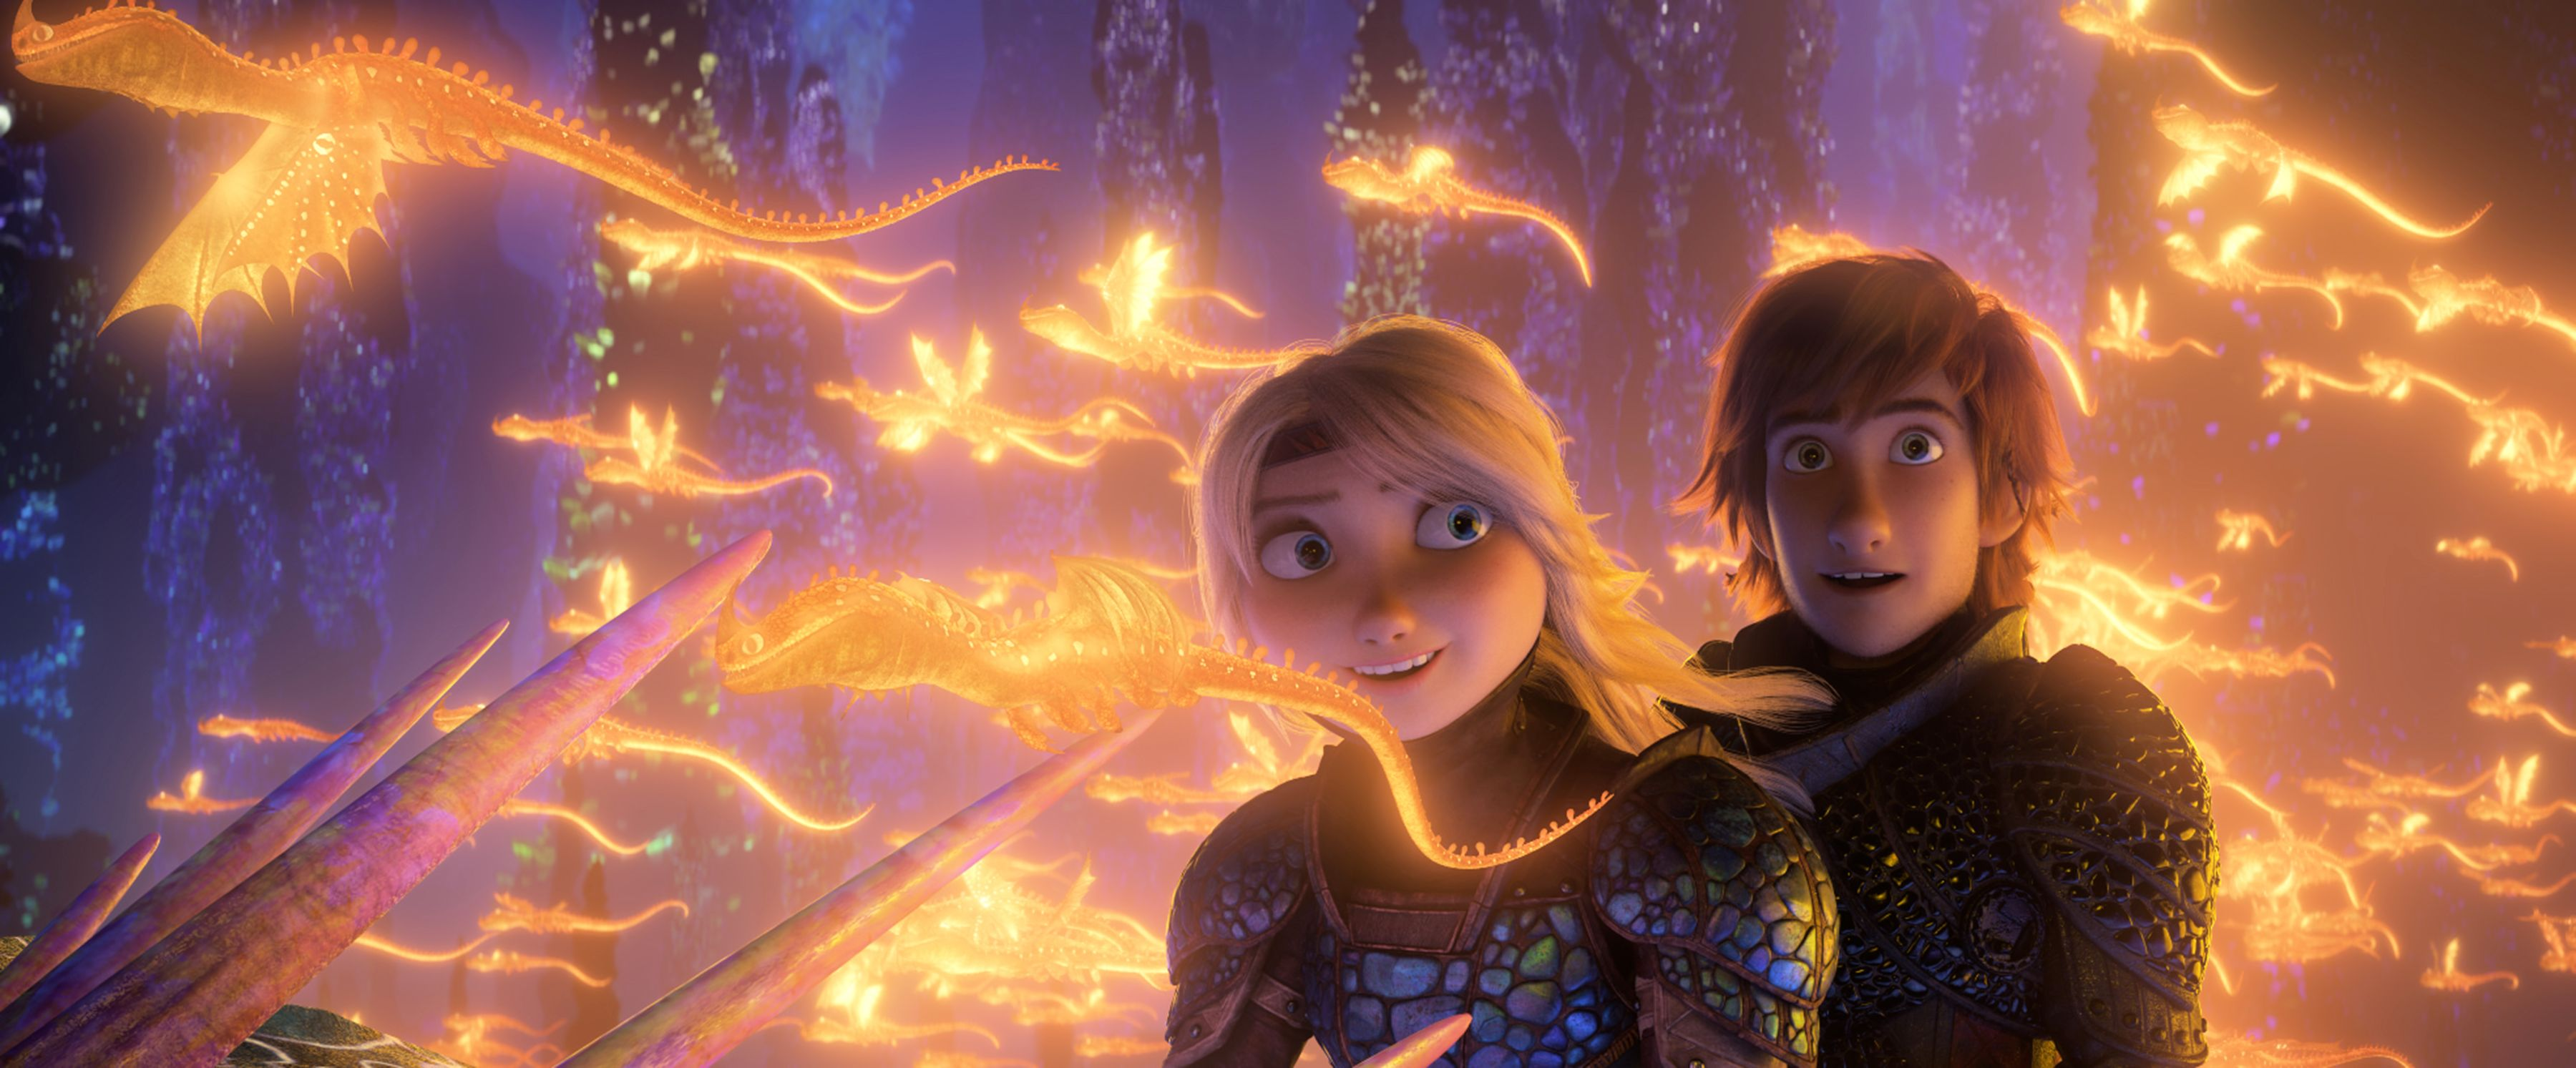 how to train your dragon 3 will end the entire franchise collider